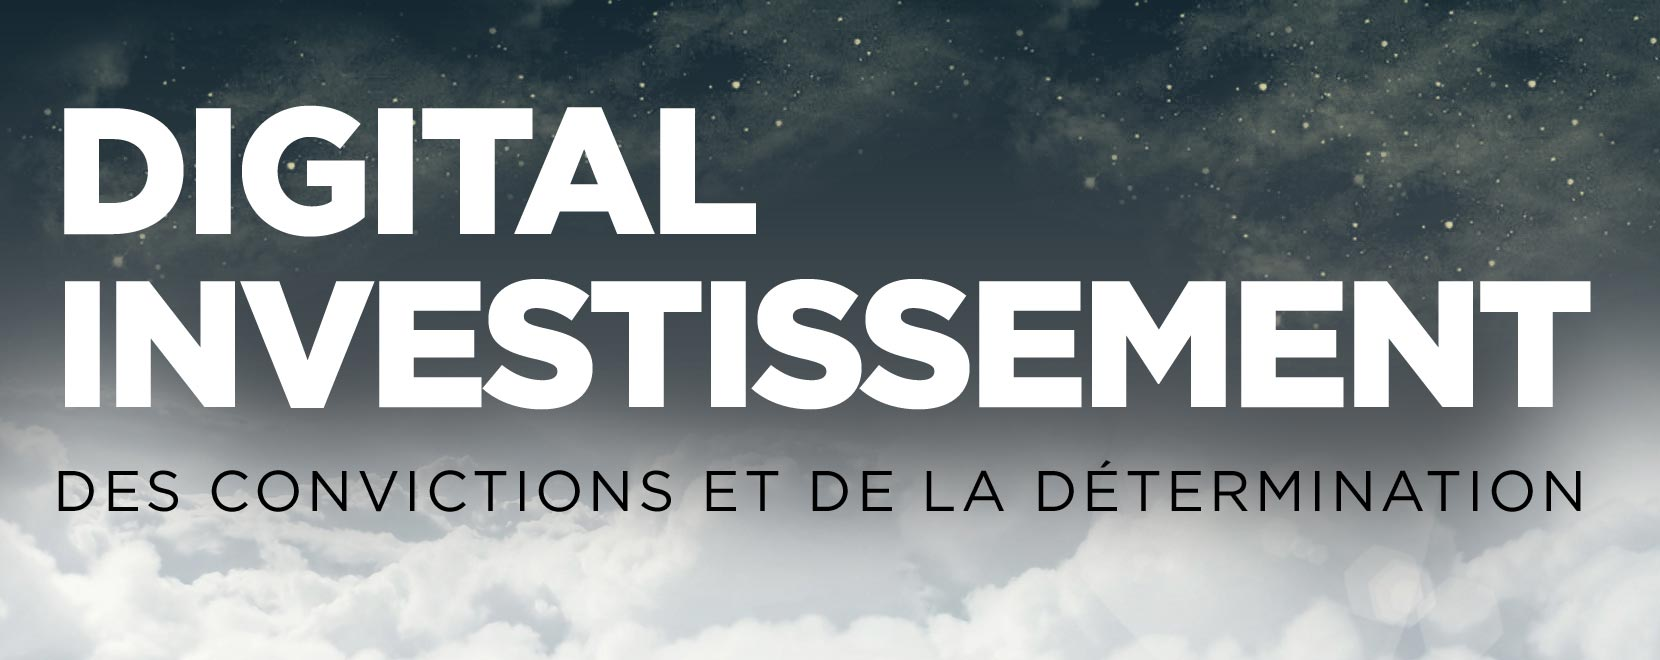 slider-digital-investissement